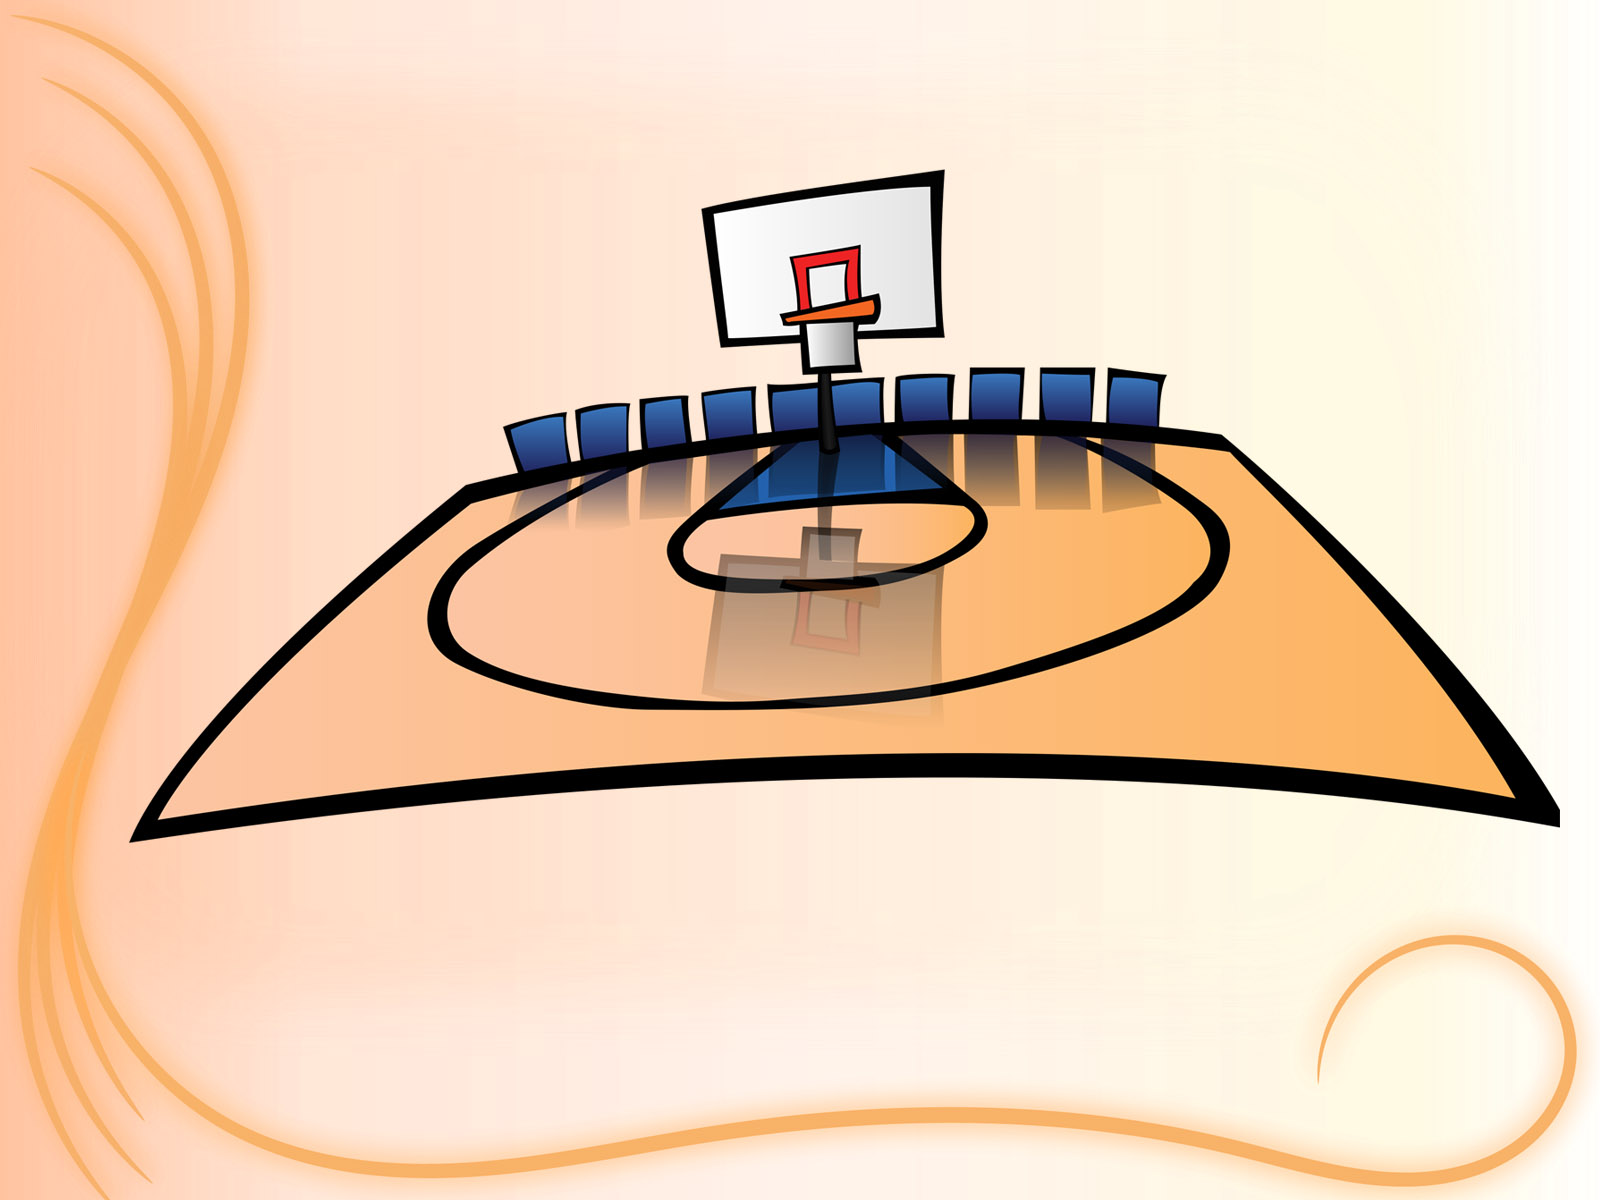 Basketball Court Powerpoint Design